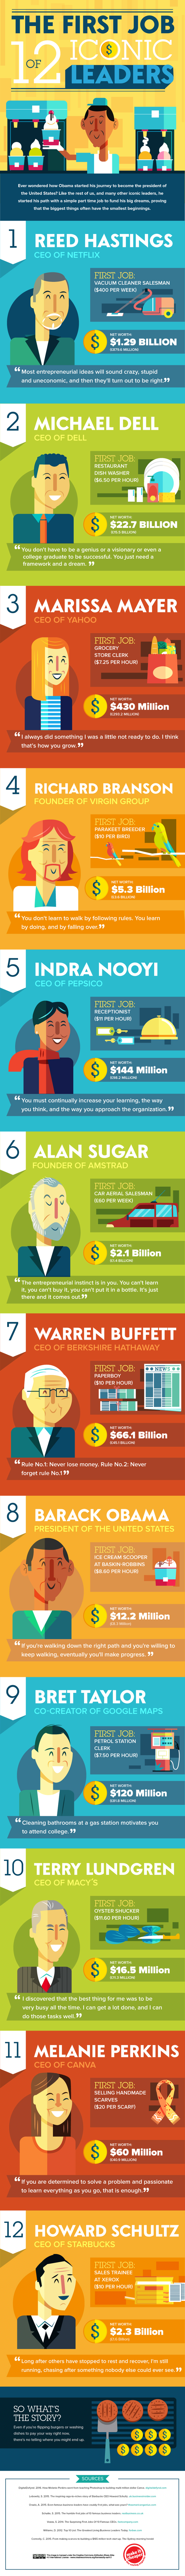 the first job of 12 iconic leaders